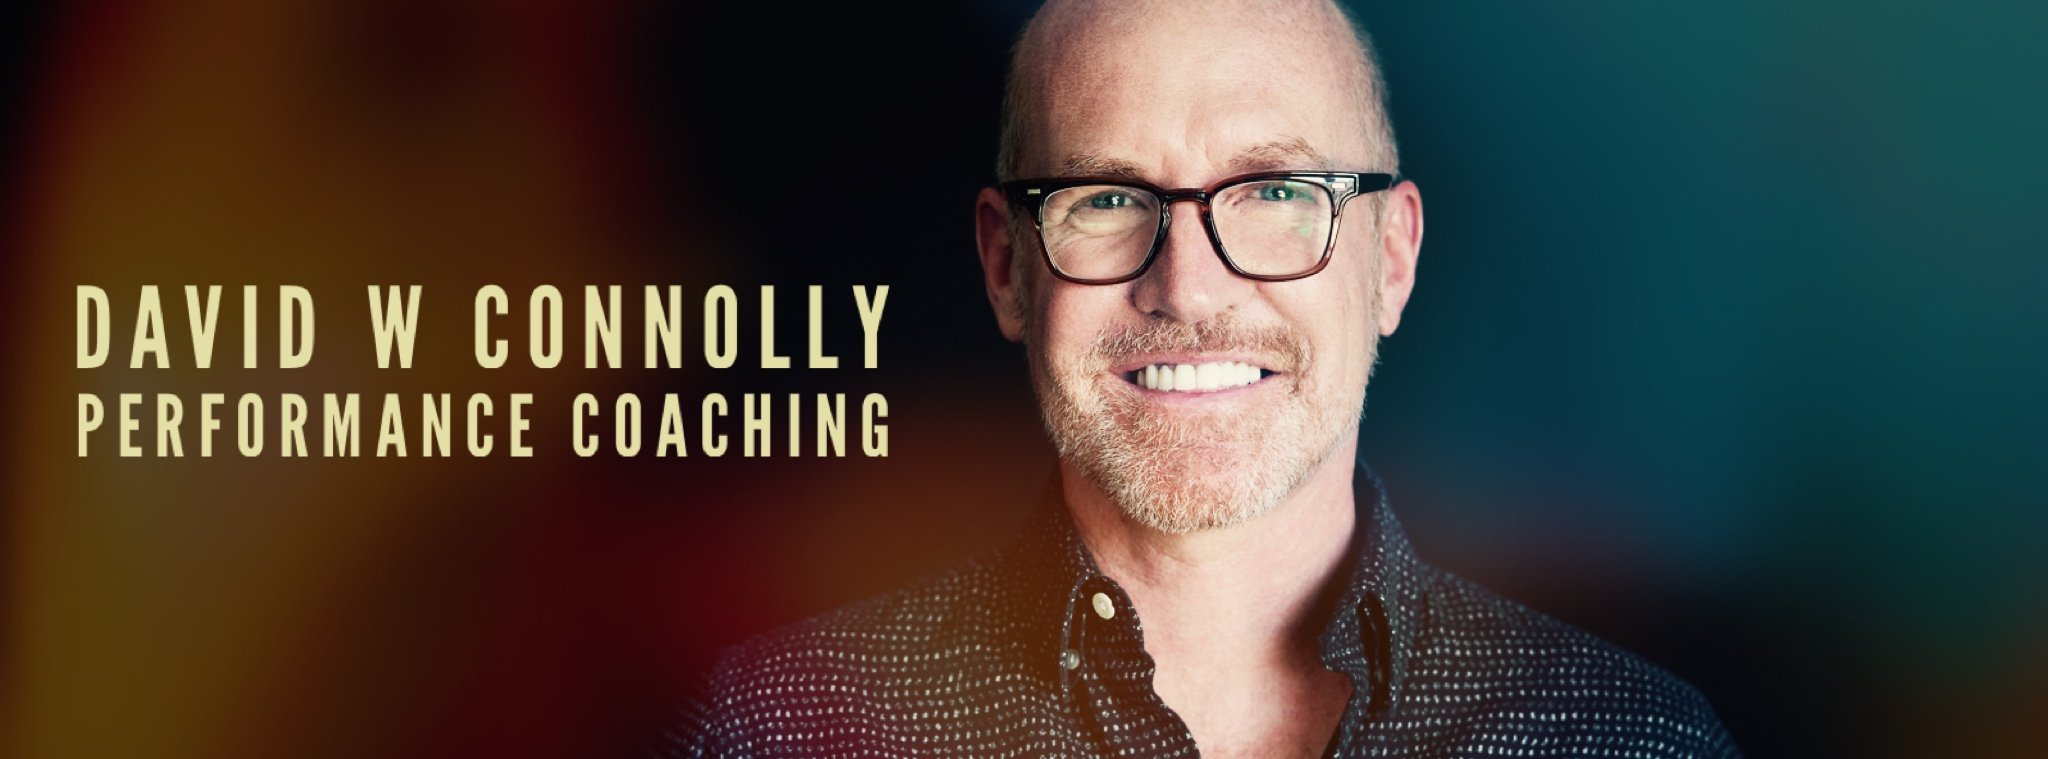 David W Connolly Performance Coaching